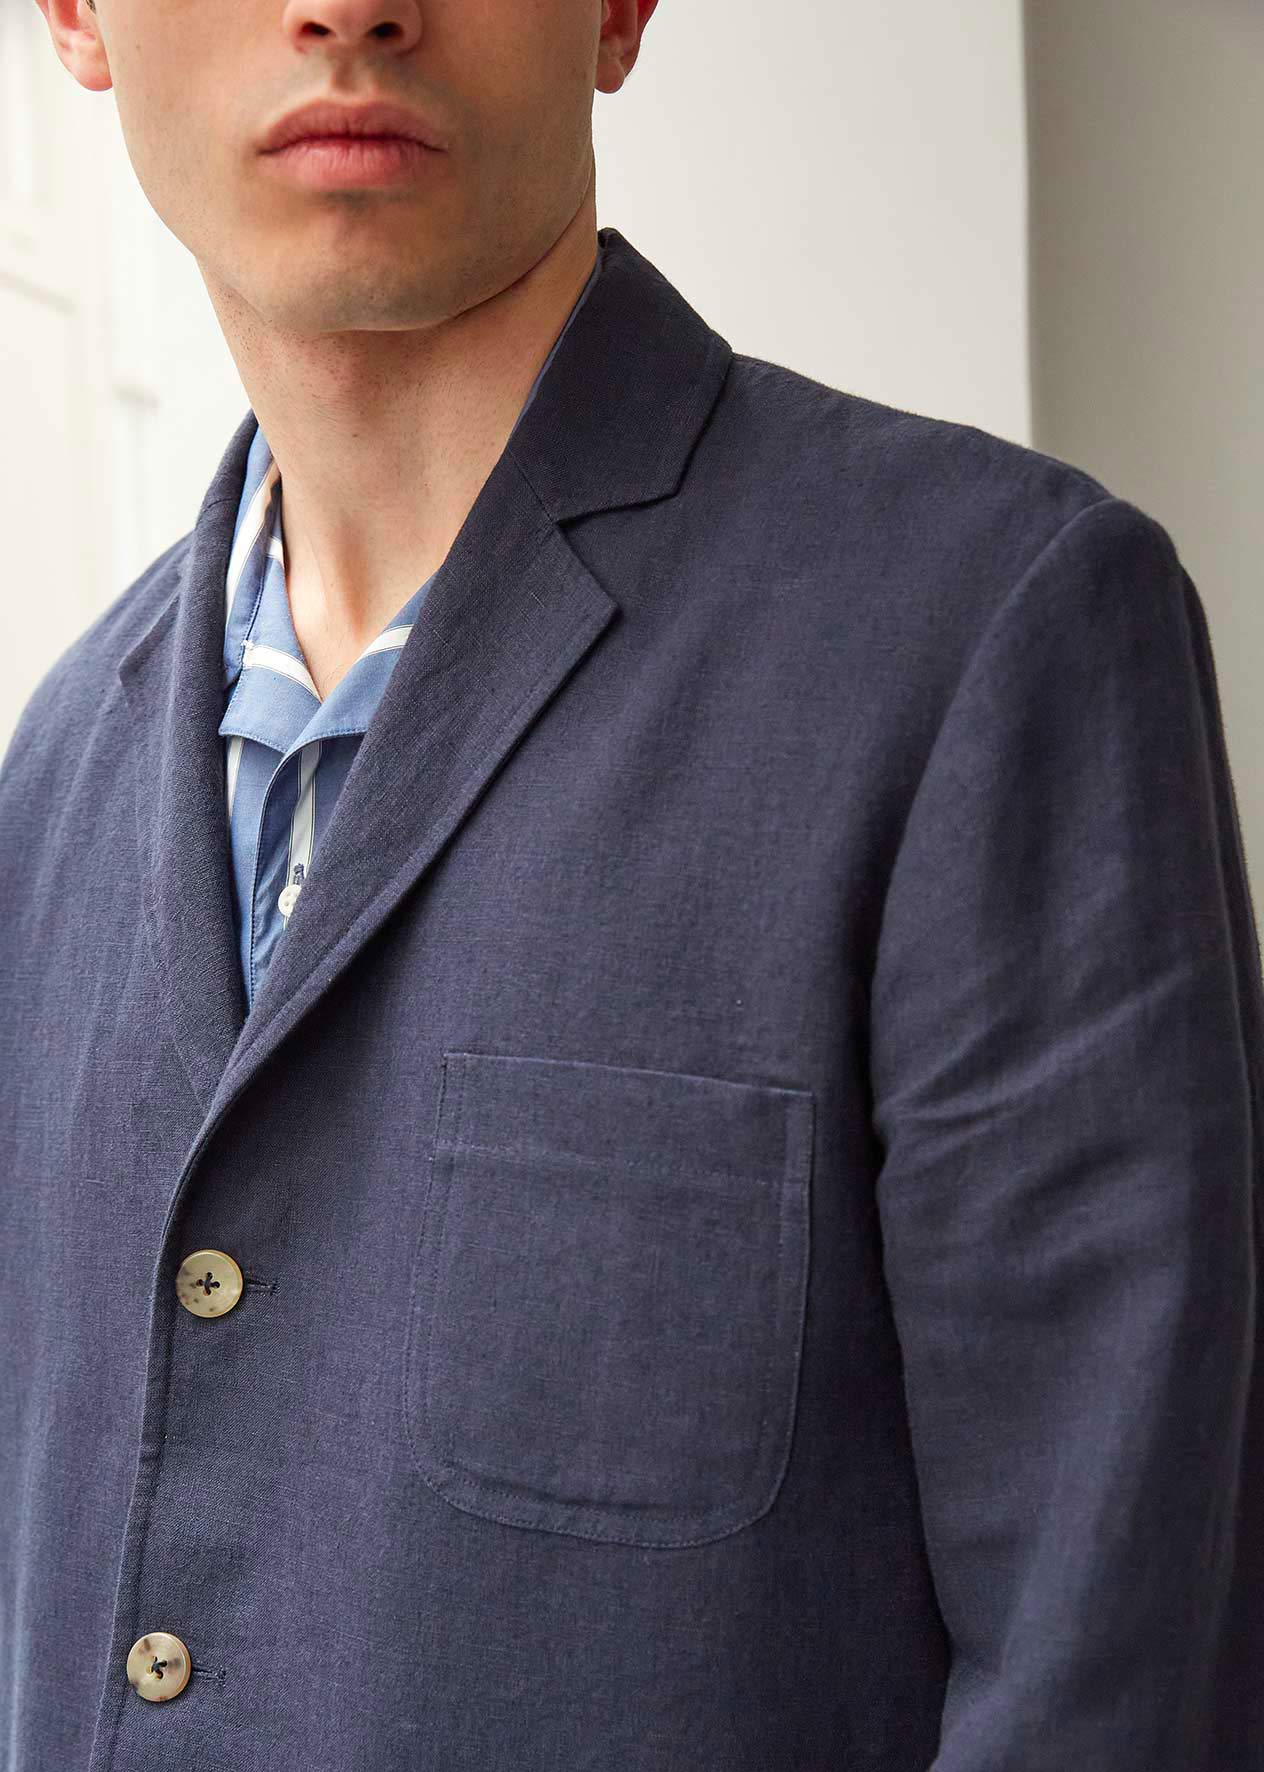 Casual jacket - Washed & brushed linen - Navy - De Bonne Facture